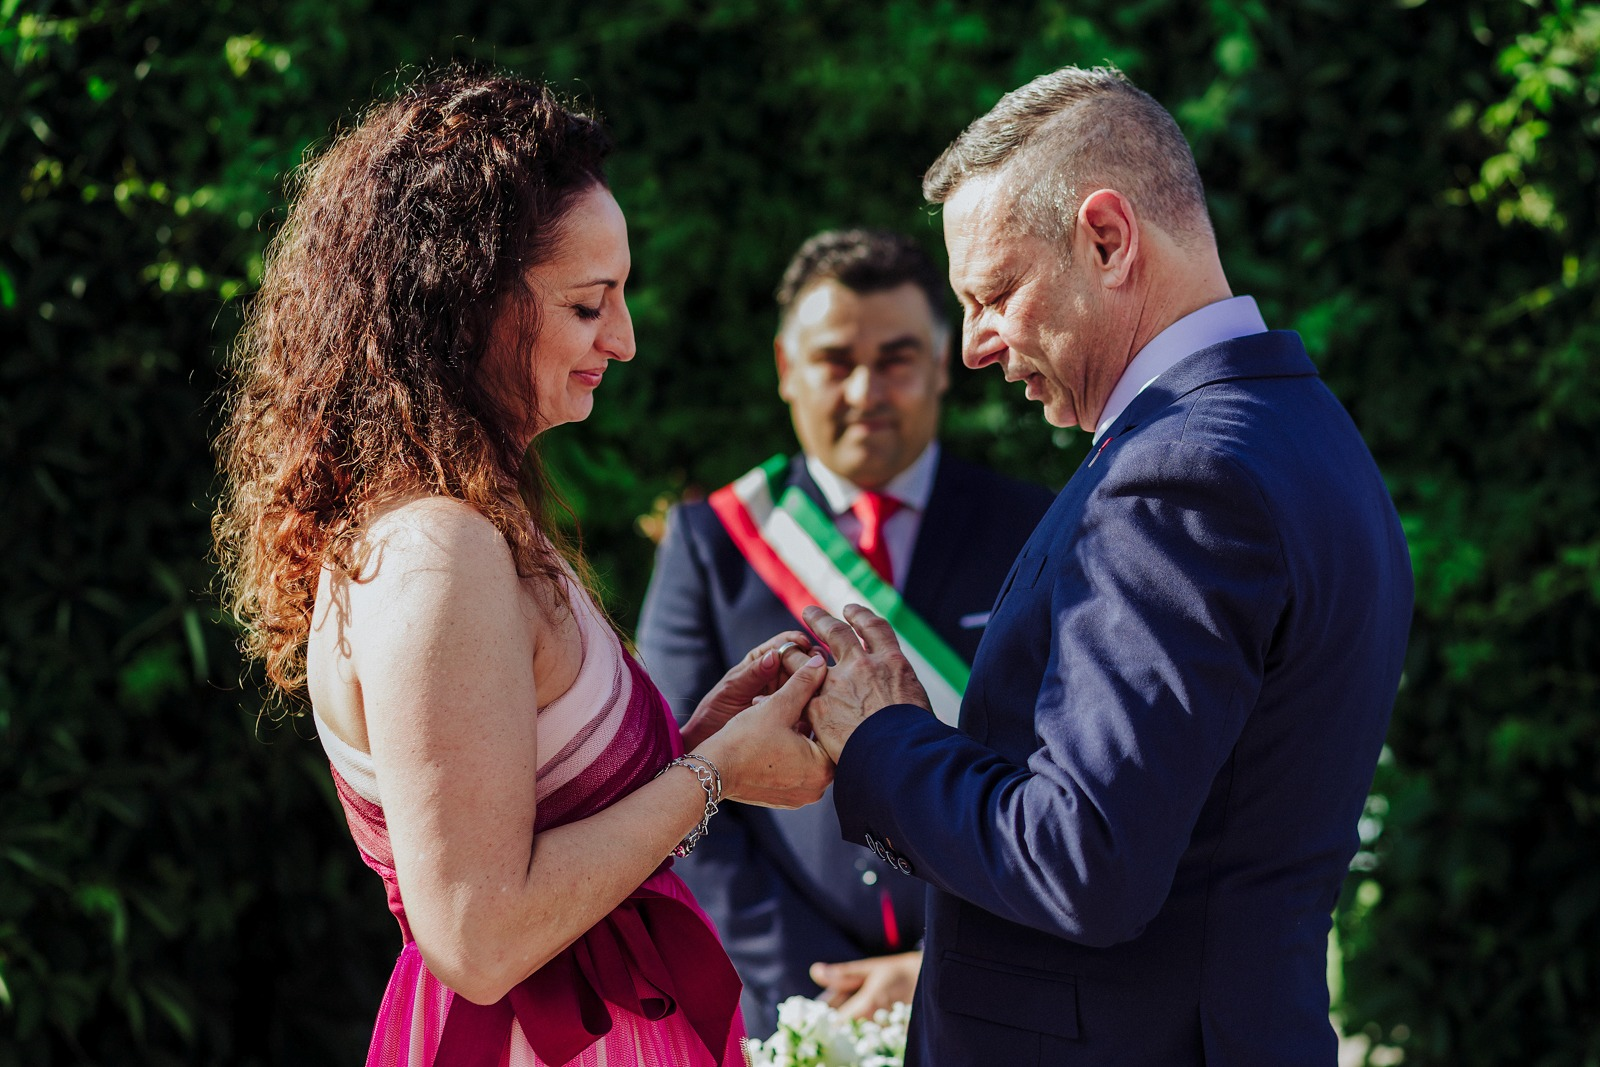 wedding-italy-bride-groom-ceremony-ring-hands-moment-yes